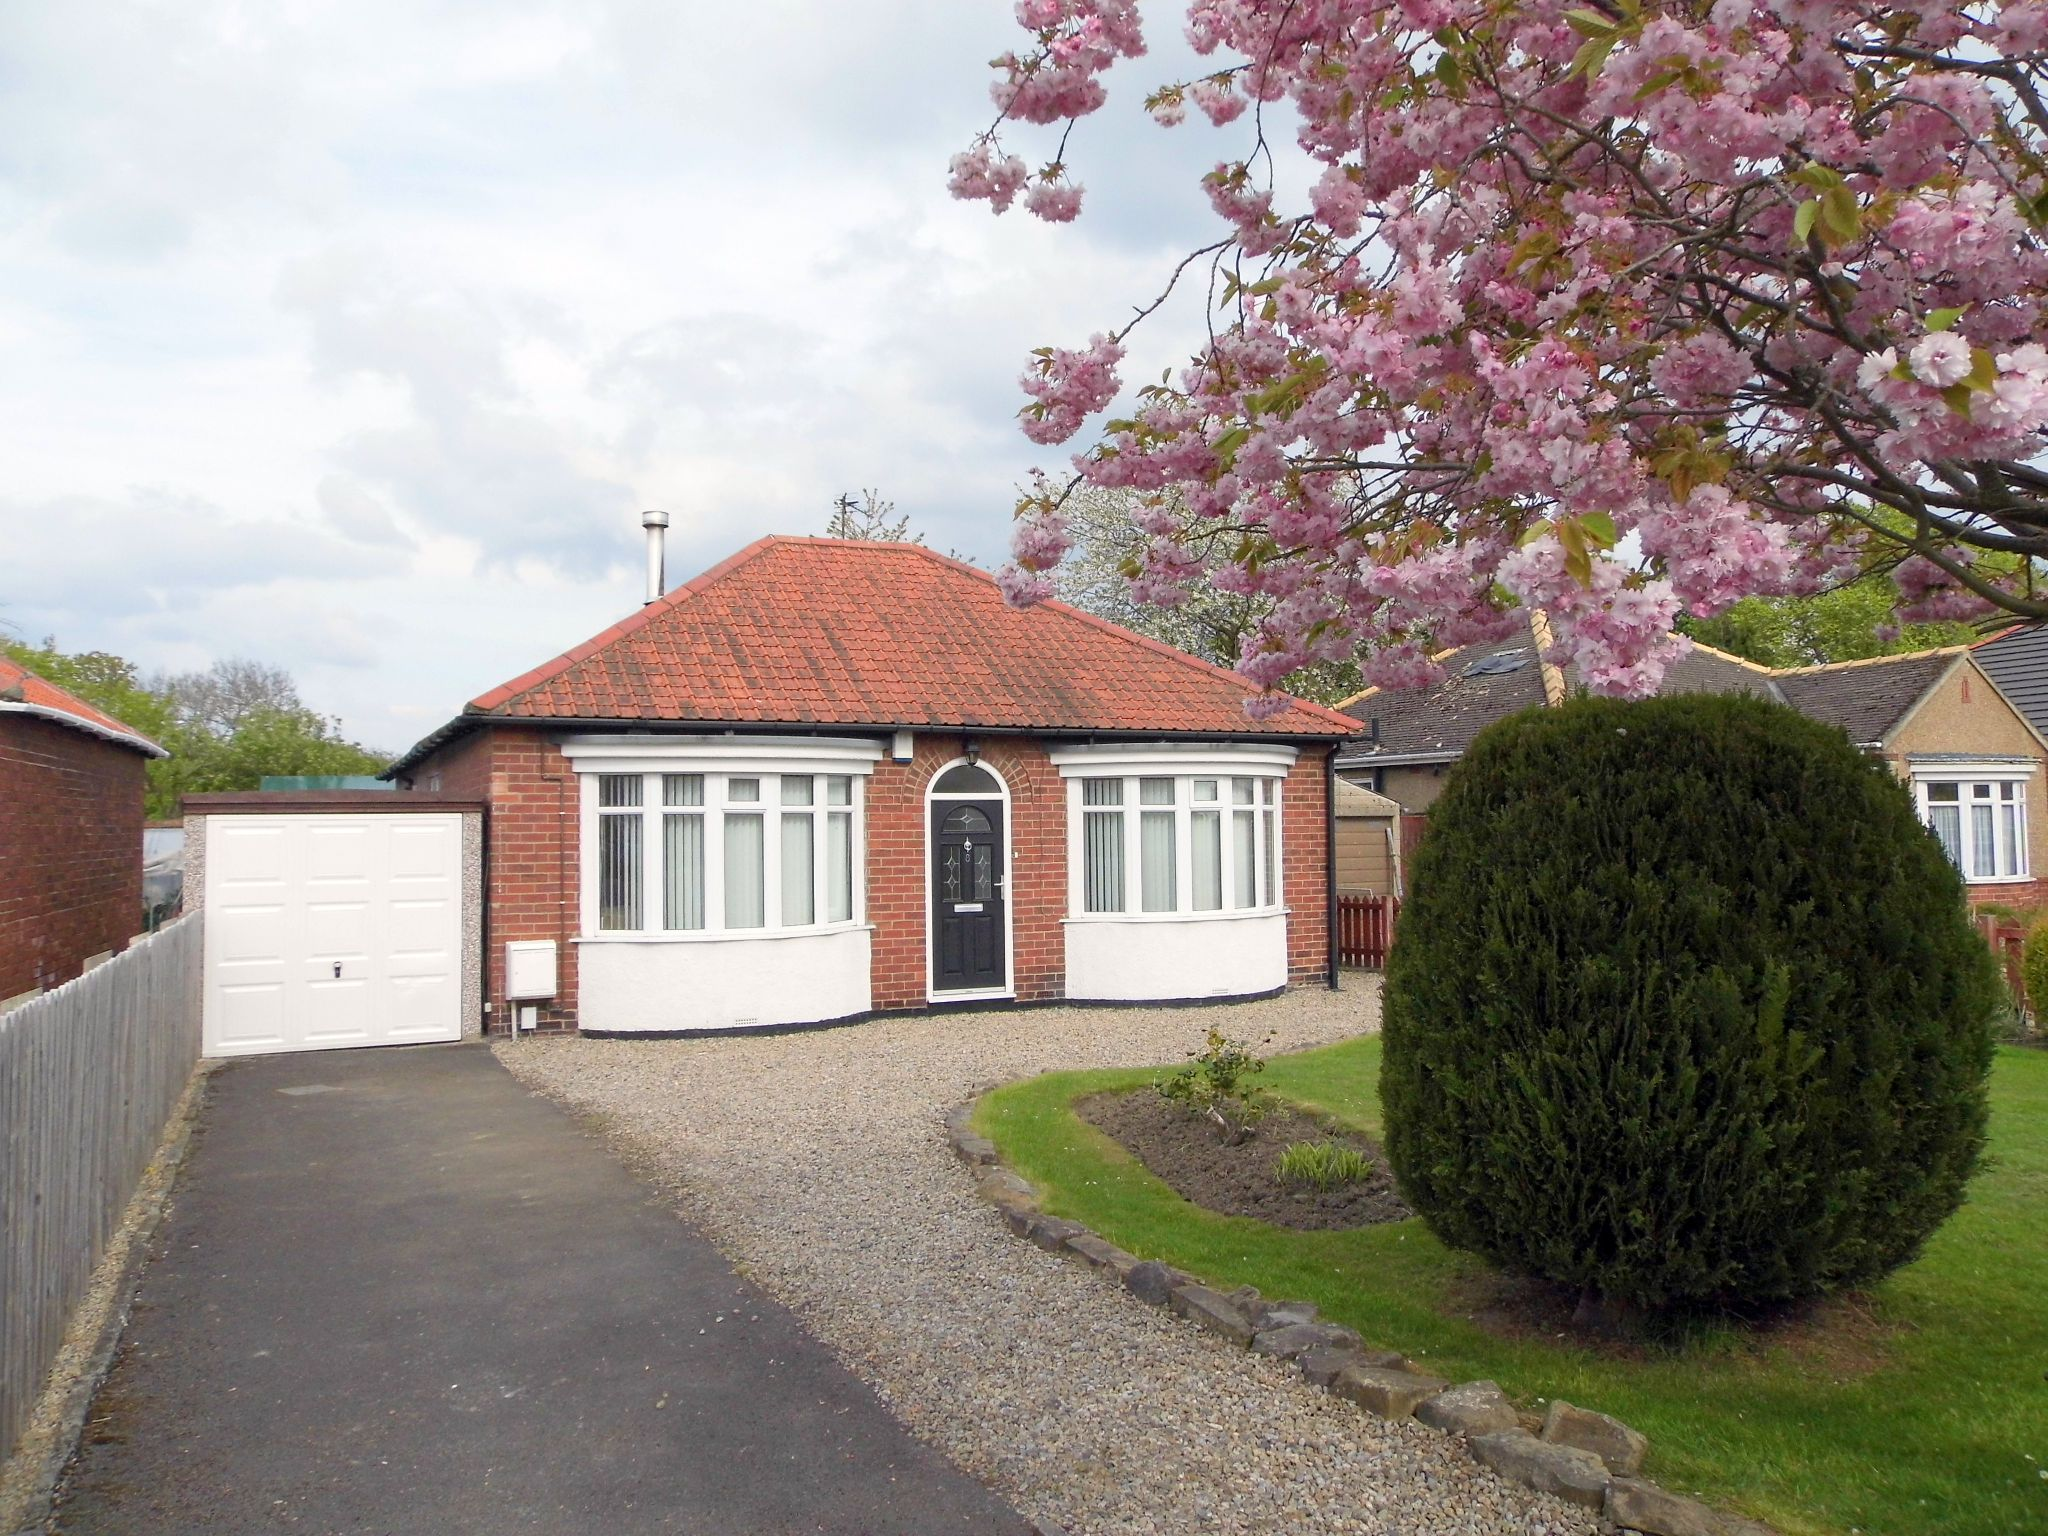 2 bedroom detached bungalow For Sale in Shildon - Front Elevation.